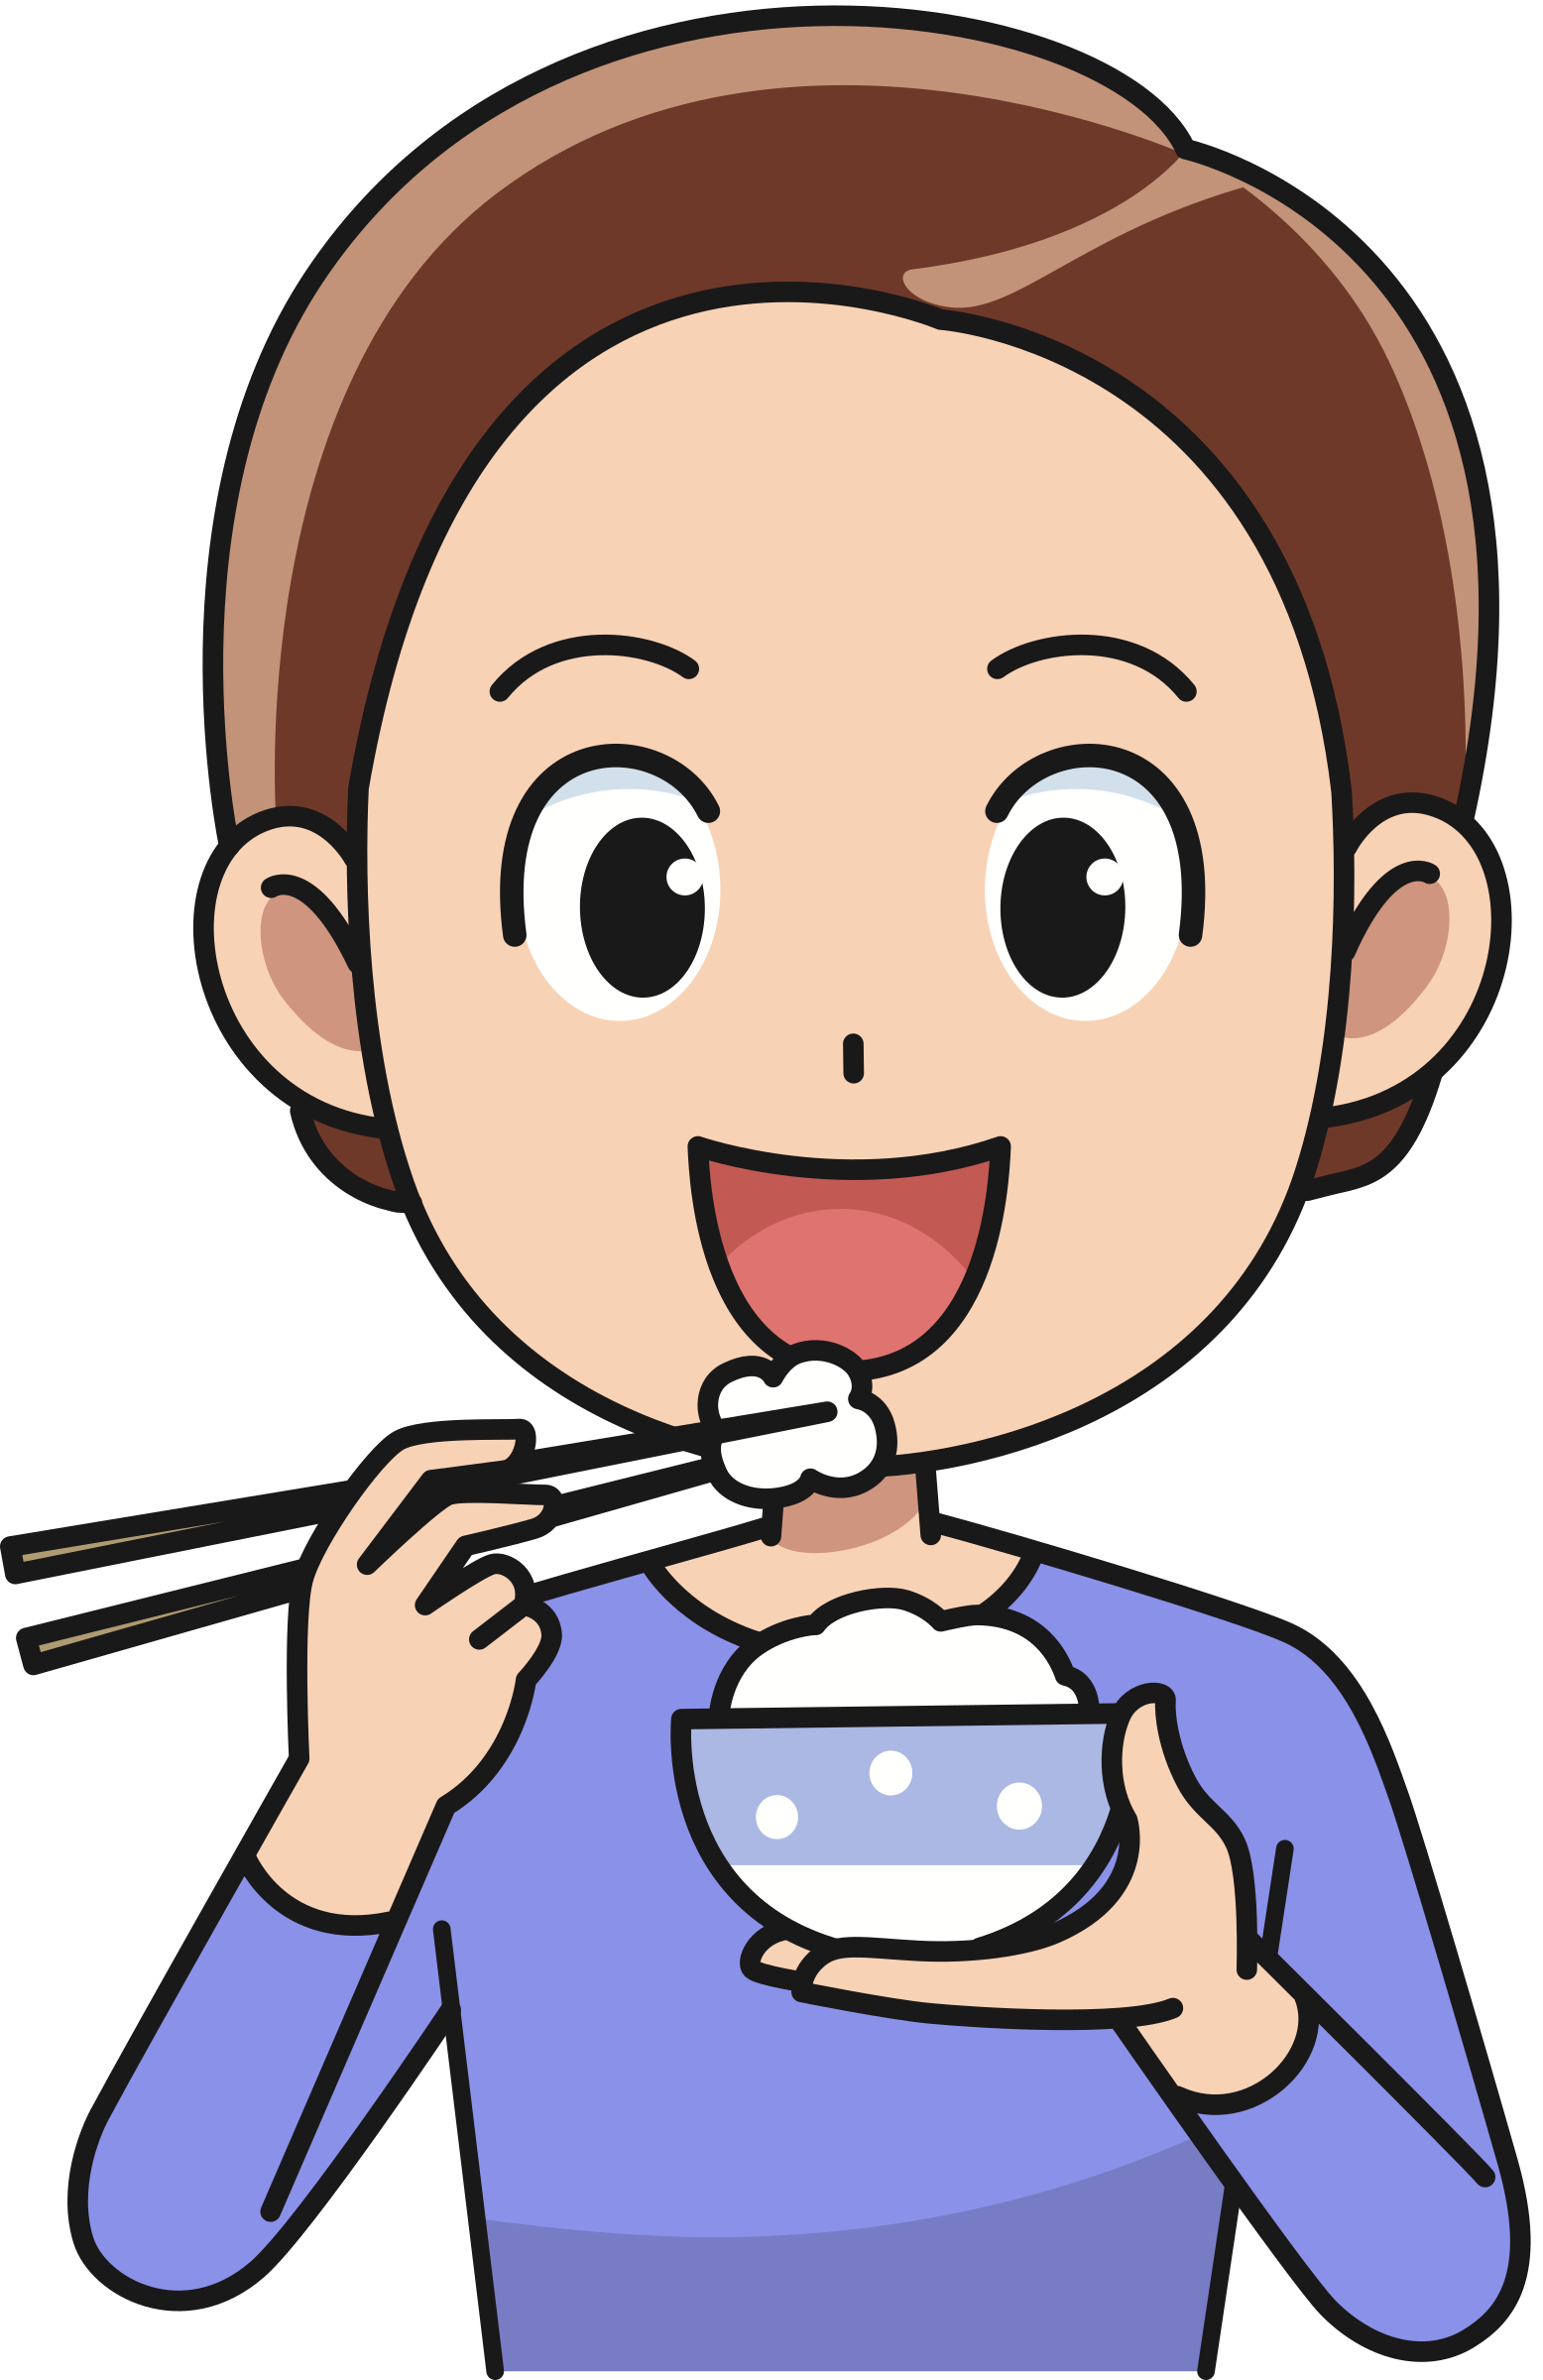 Eat clipart. Man eating rice big